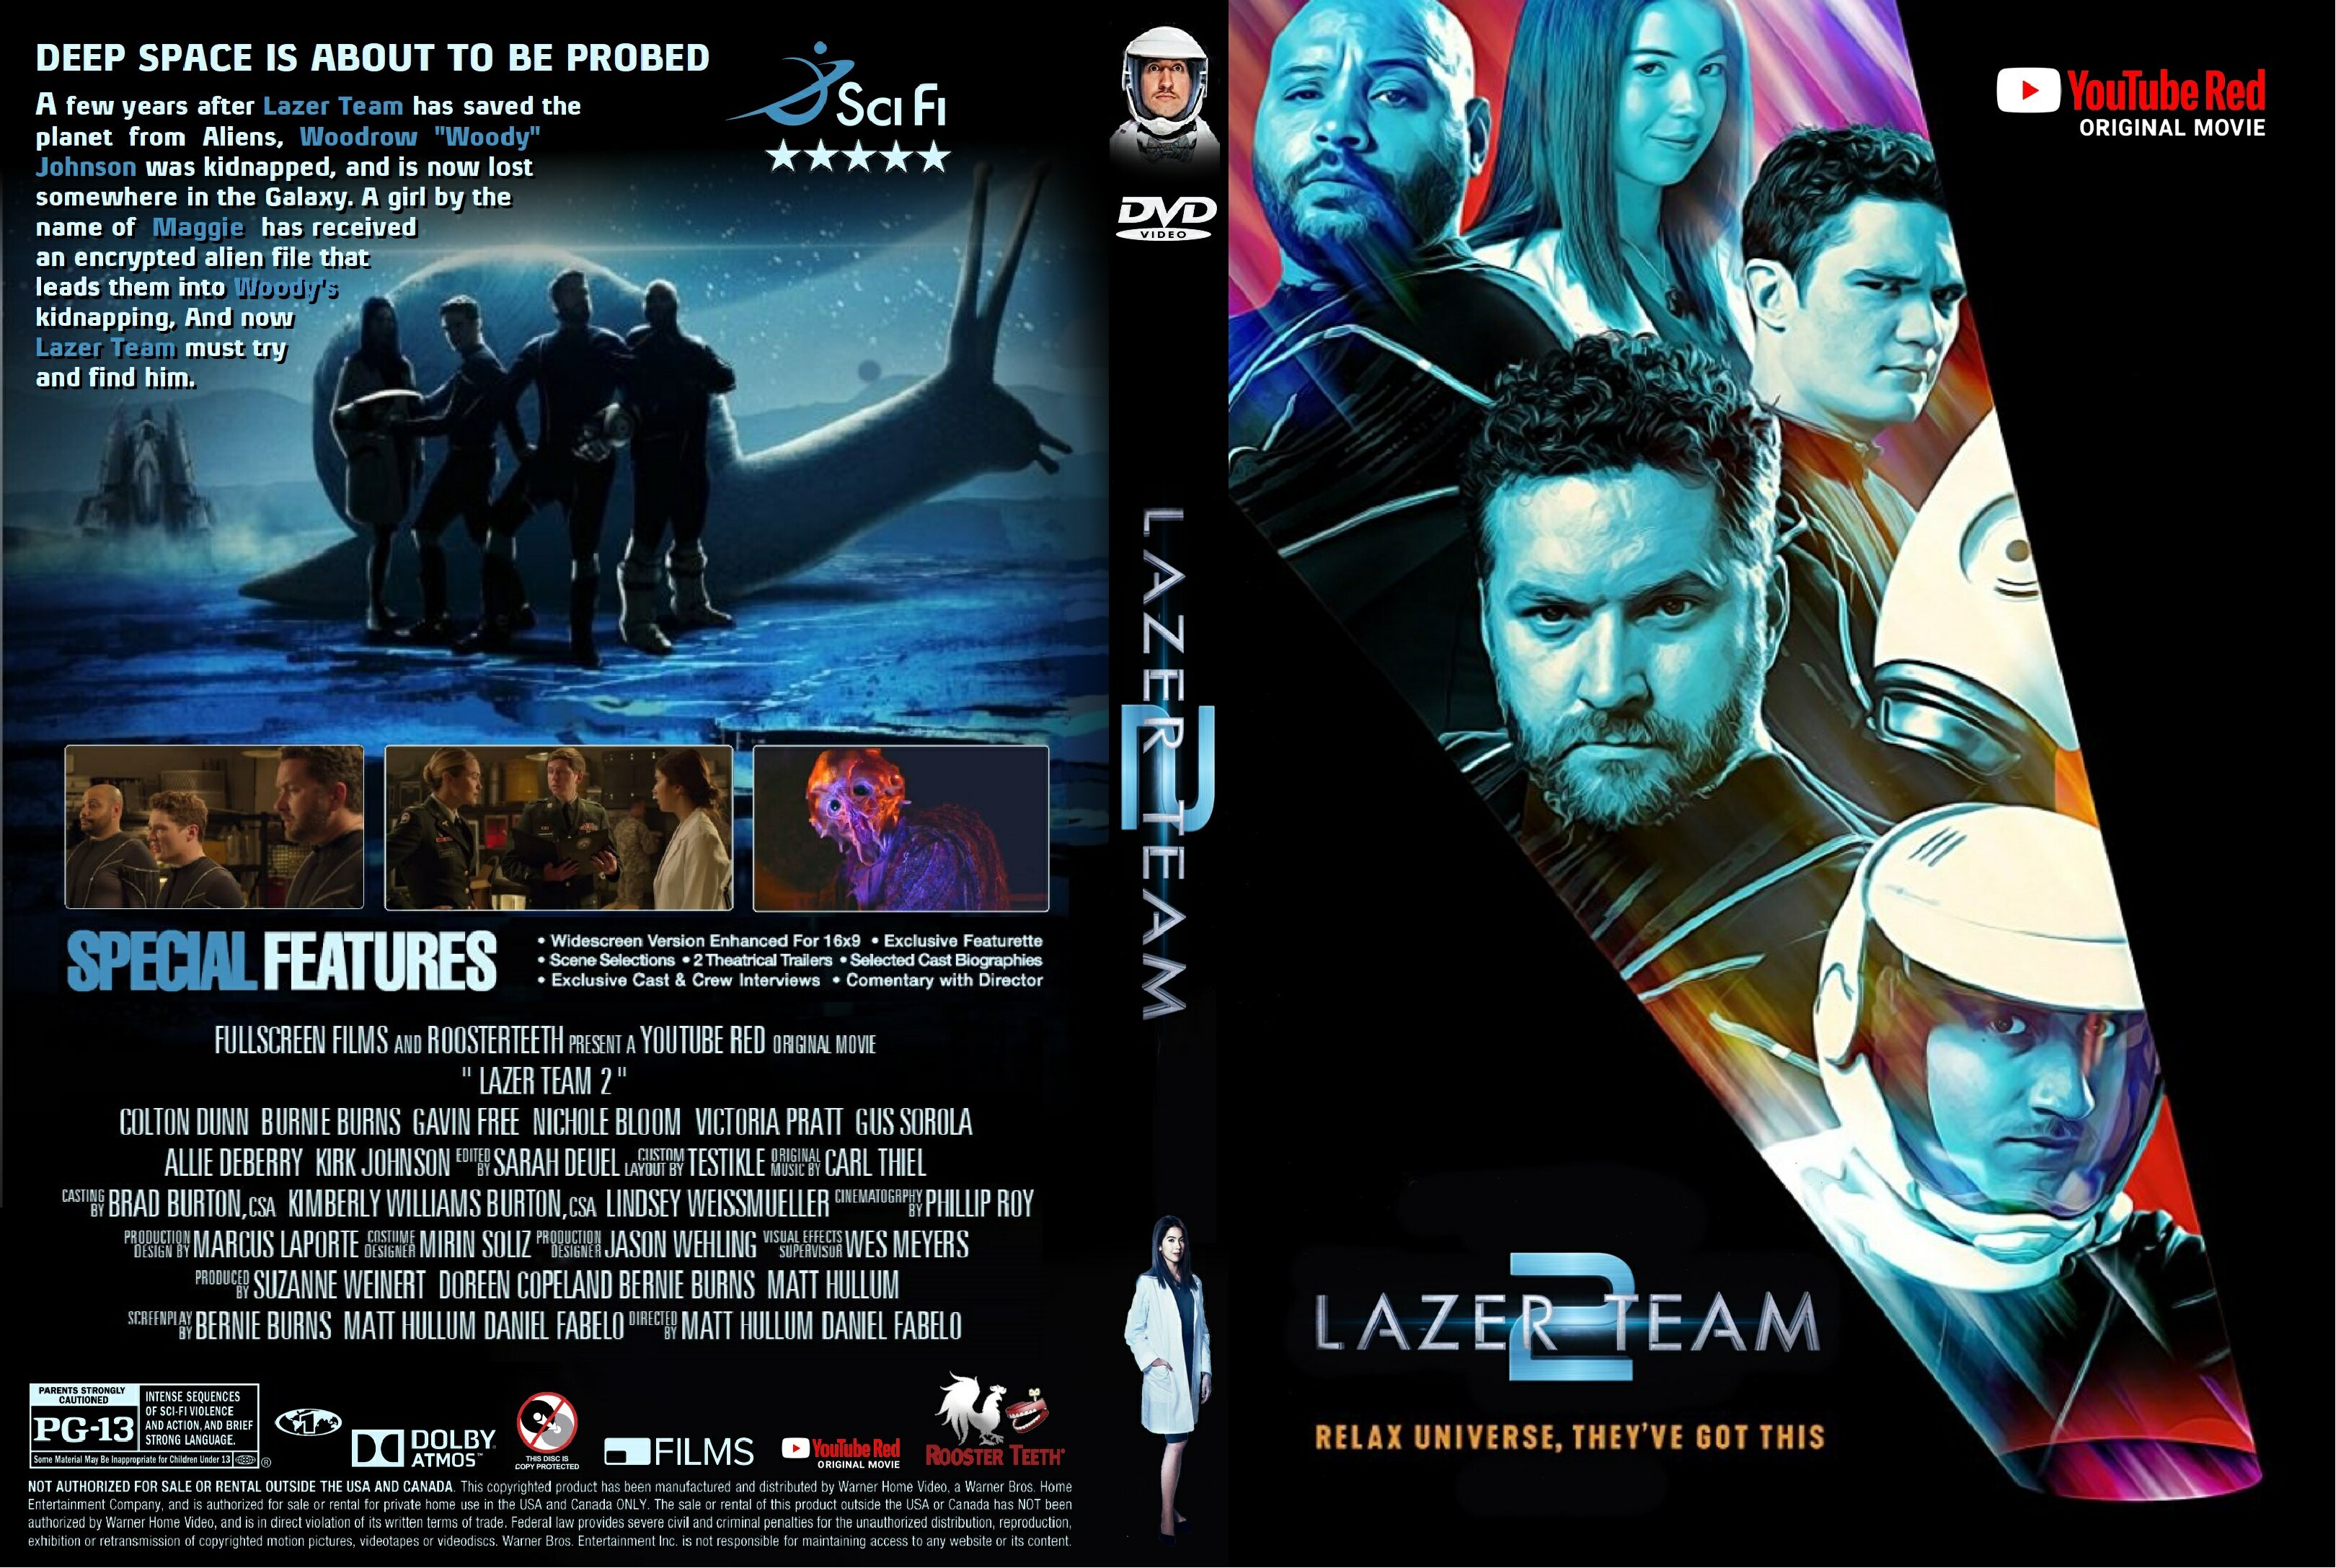 lazer team full movie in hindi download